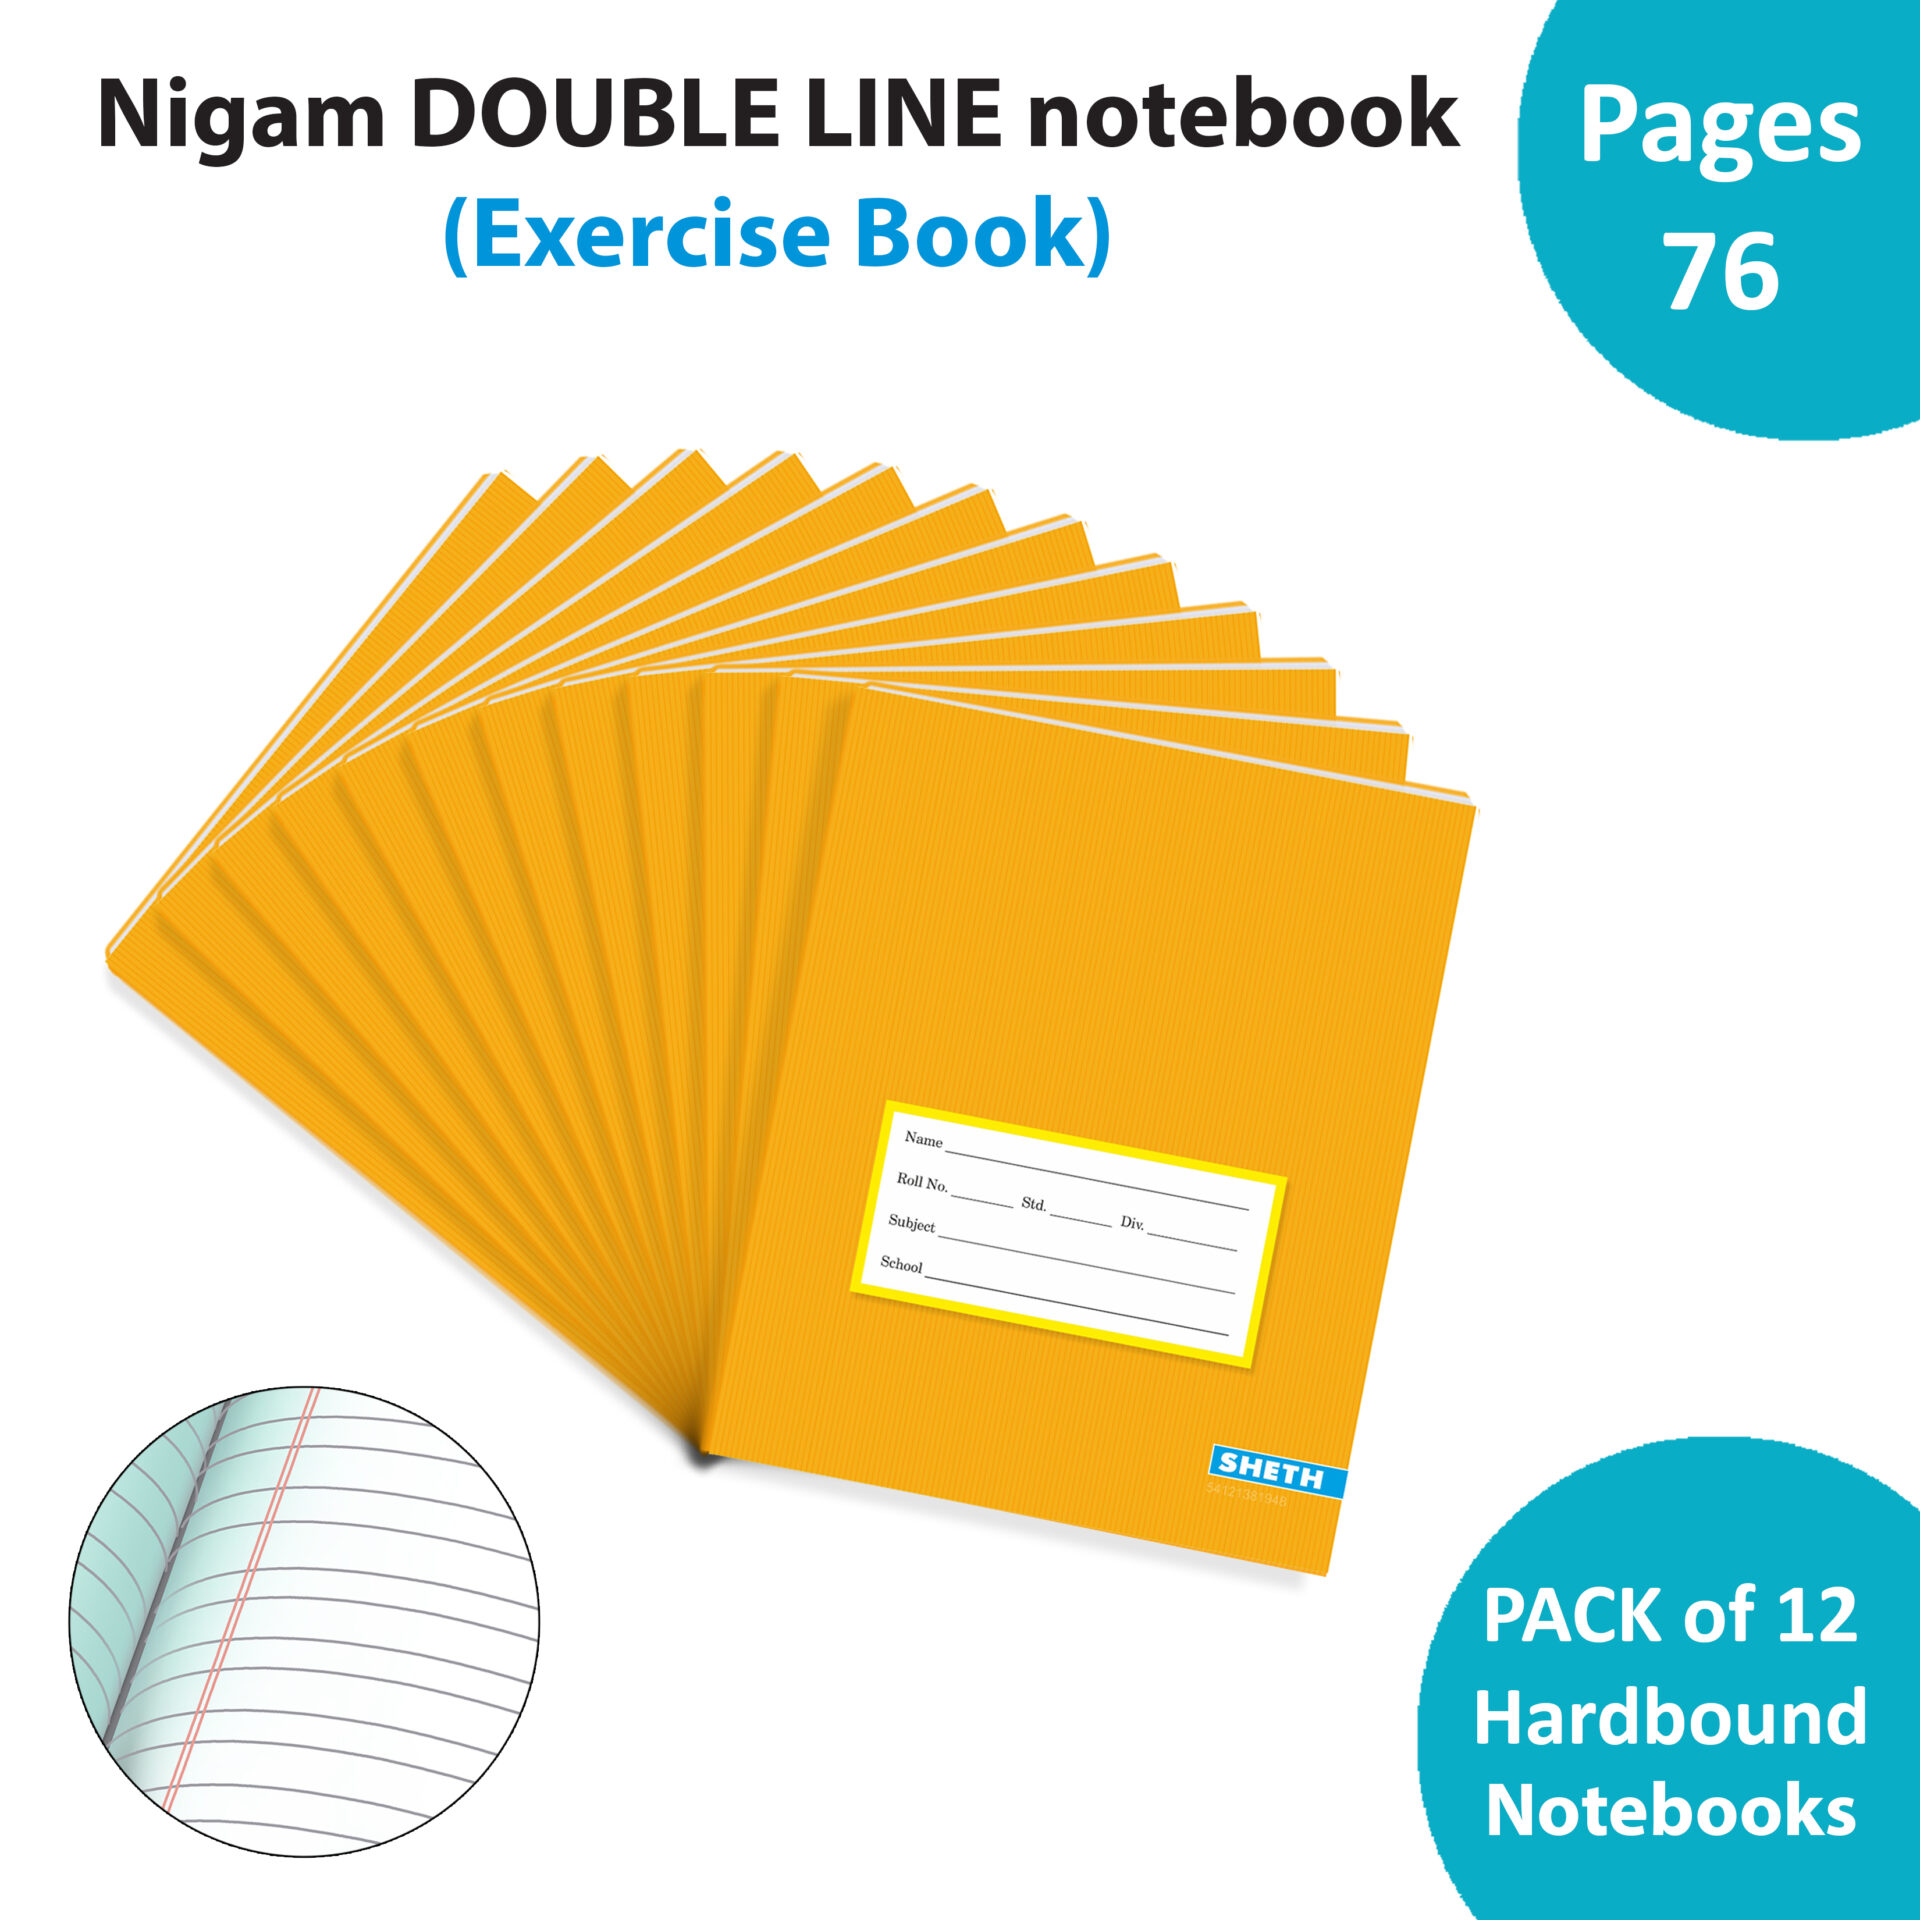 Nigam Double Line Note Book 76 Pages Hard Bound Set of 12 1